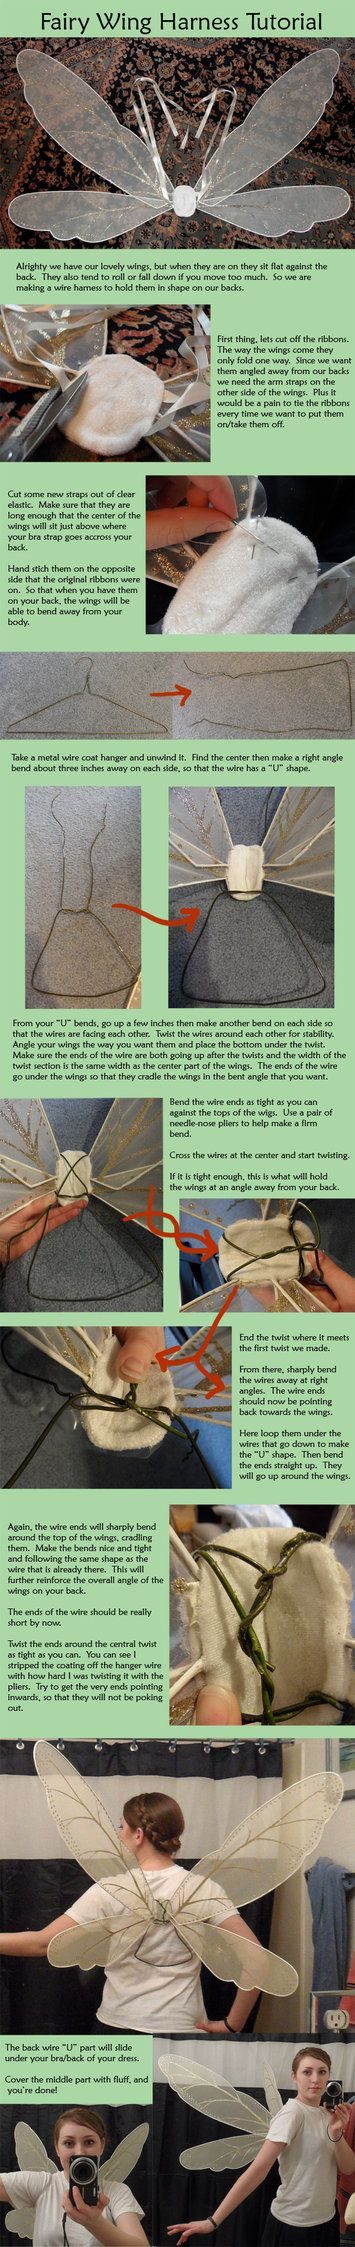 Fairy Wing Wire Harness Tutorial by Naerko on deviantART | Costuming